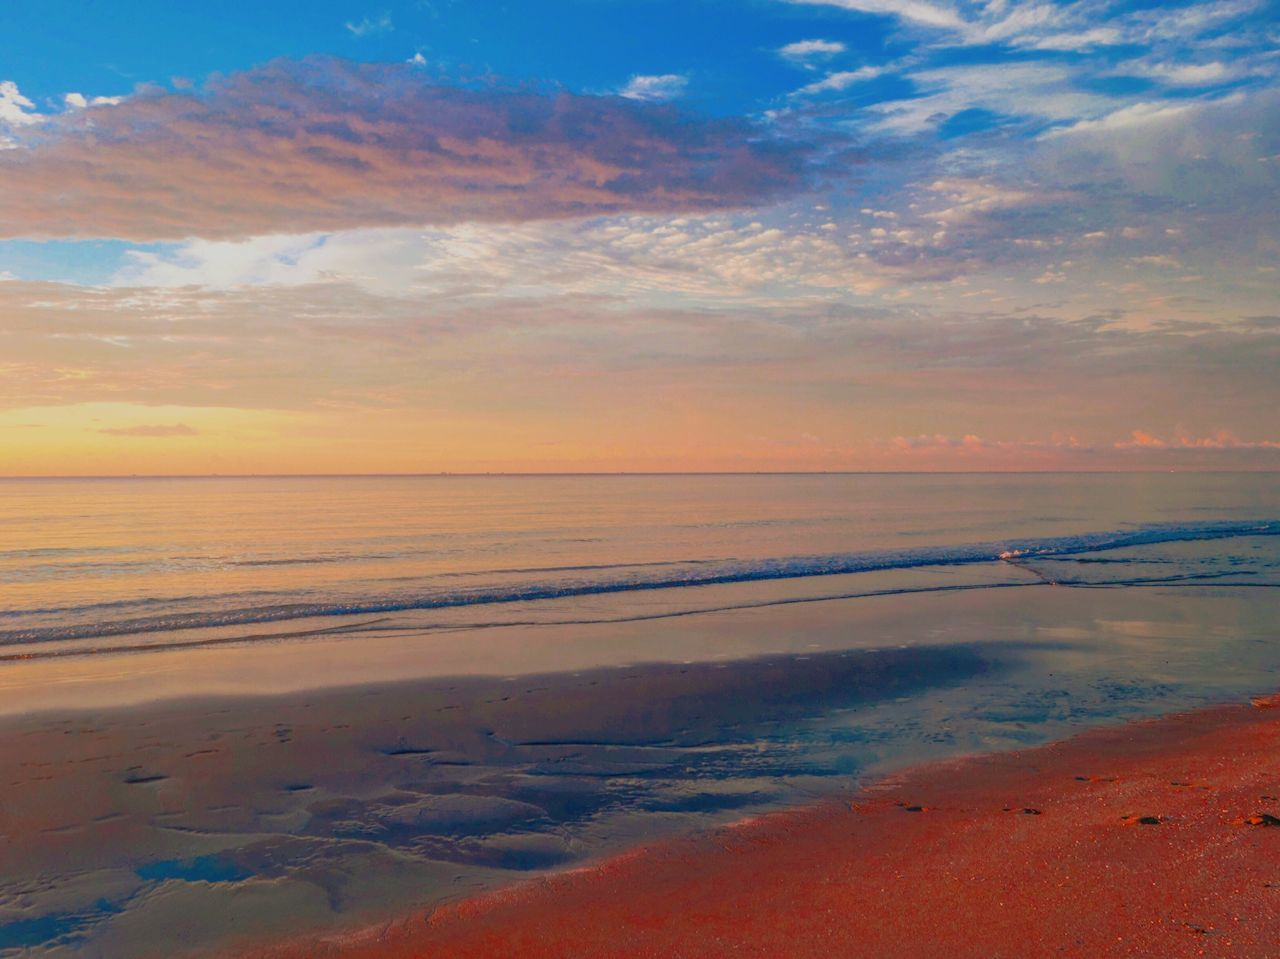 sunset, sky, sea, scenics, cloud - sky, beauty in nature, nature, tranquility, beach, tranquil scene, water, idyllic, horizon over water, outdoors, no people, sand, wave, day